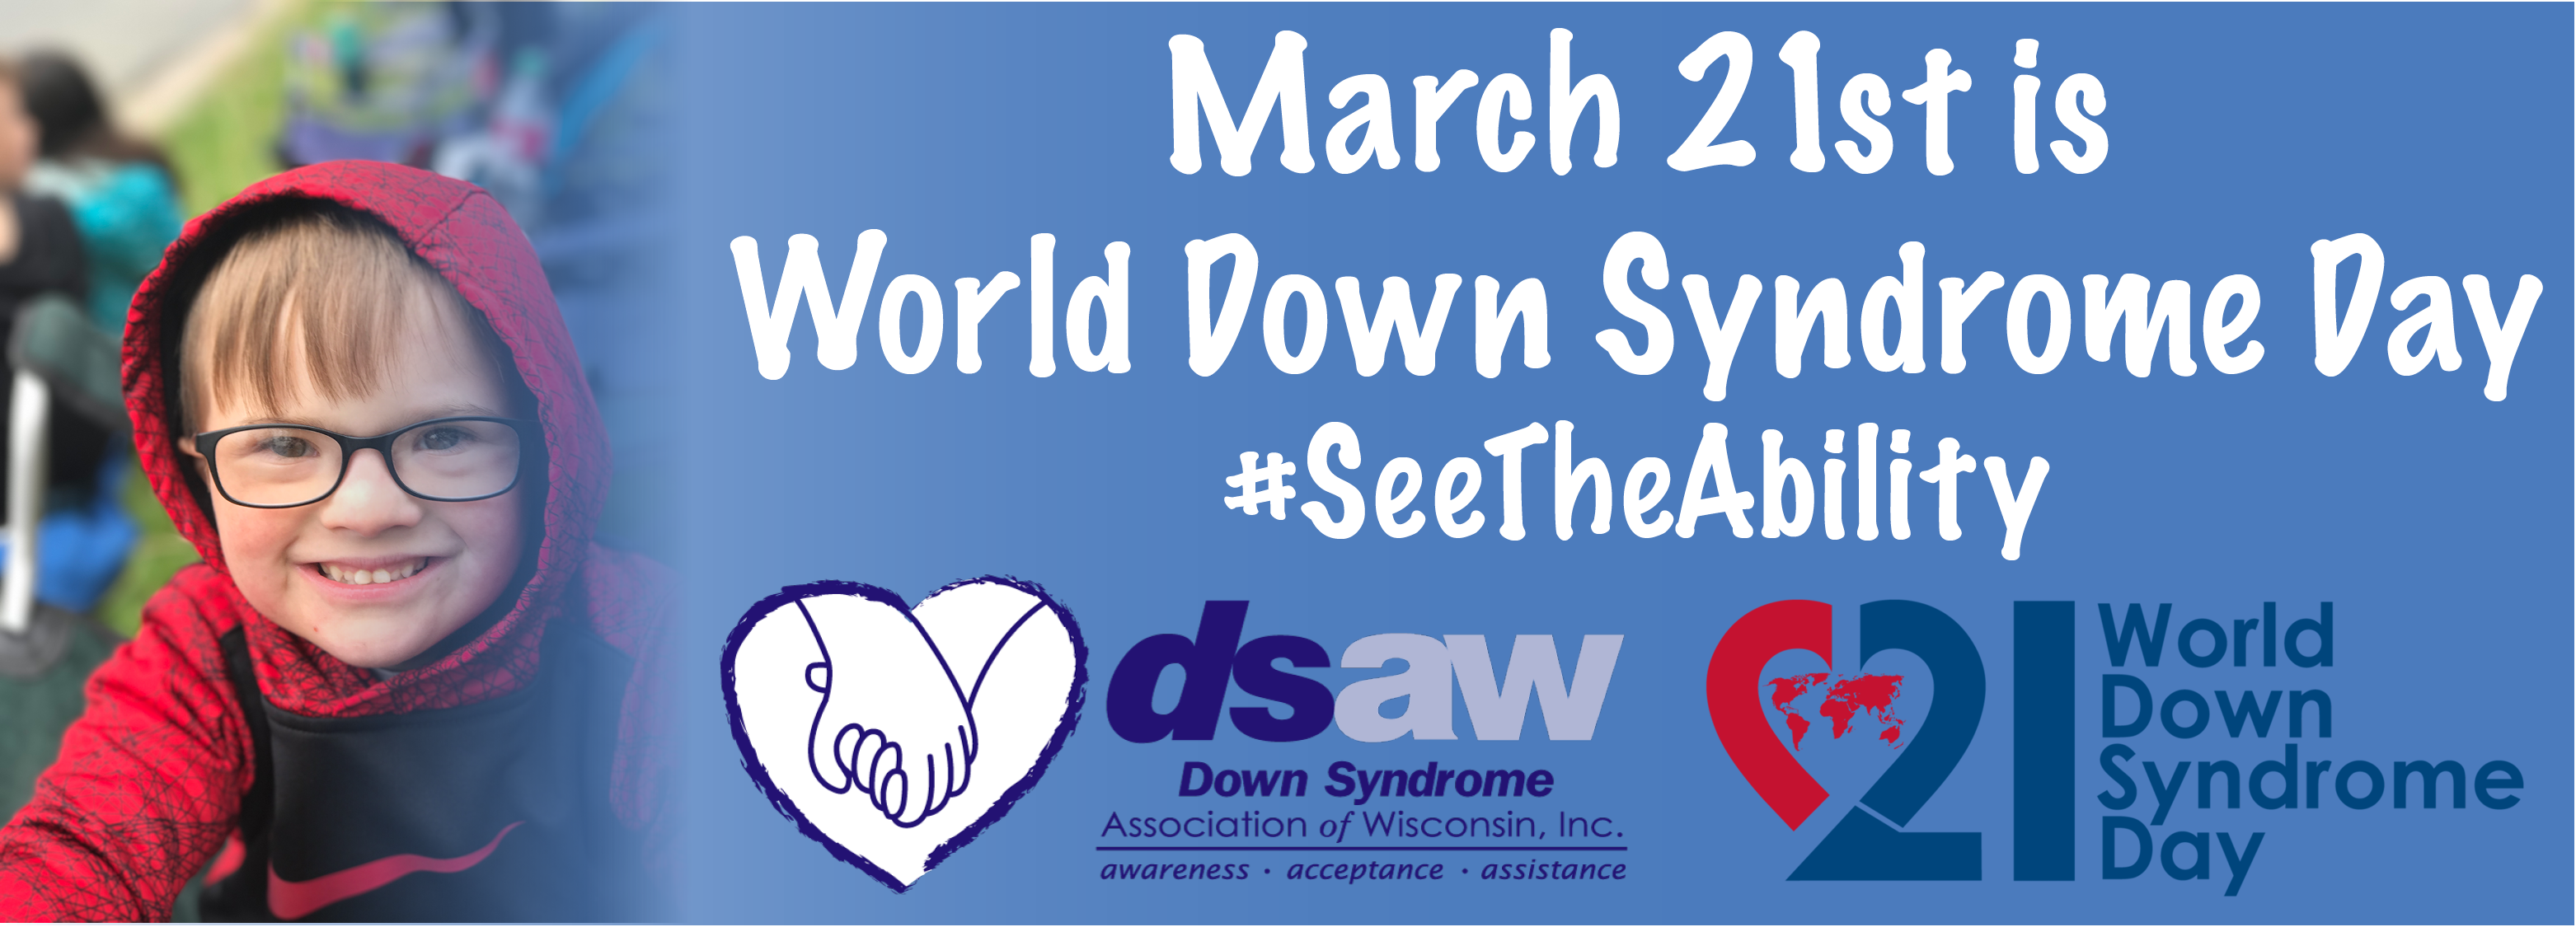 World Down Syndrome Day 2018